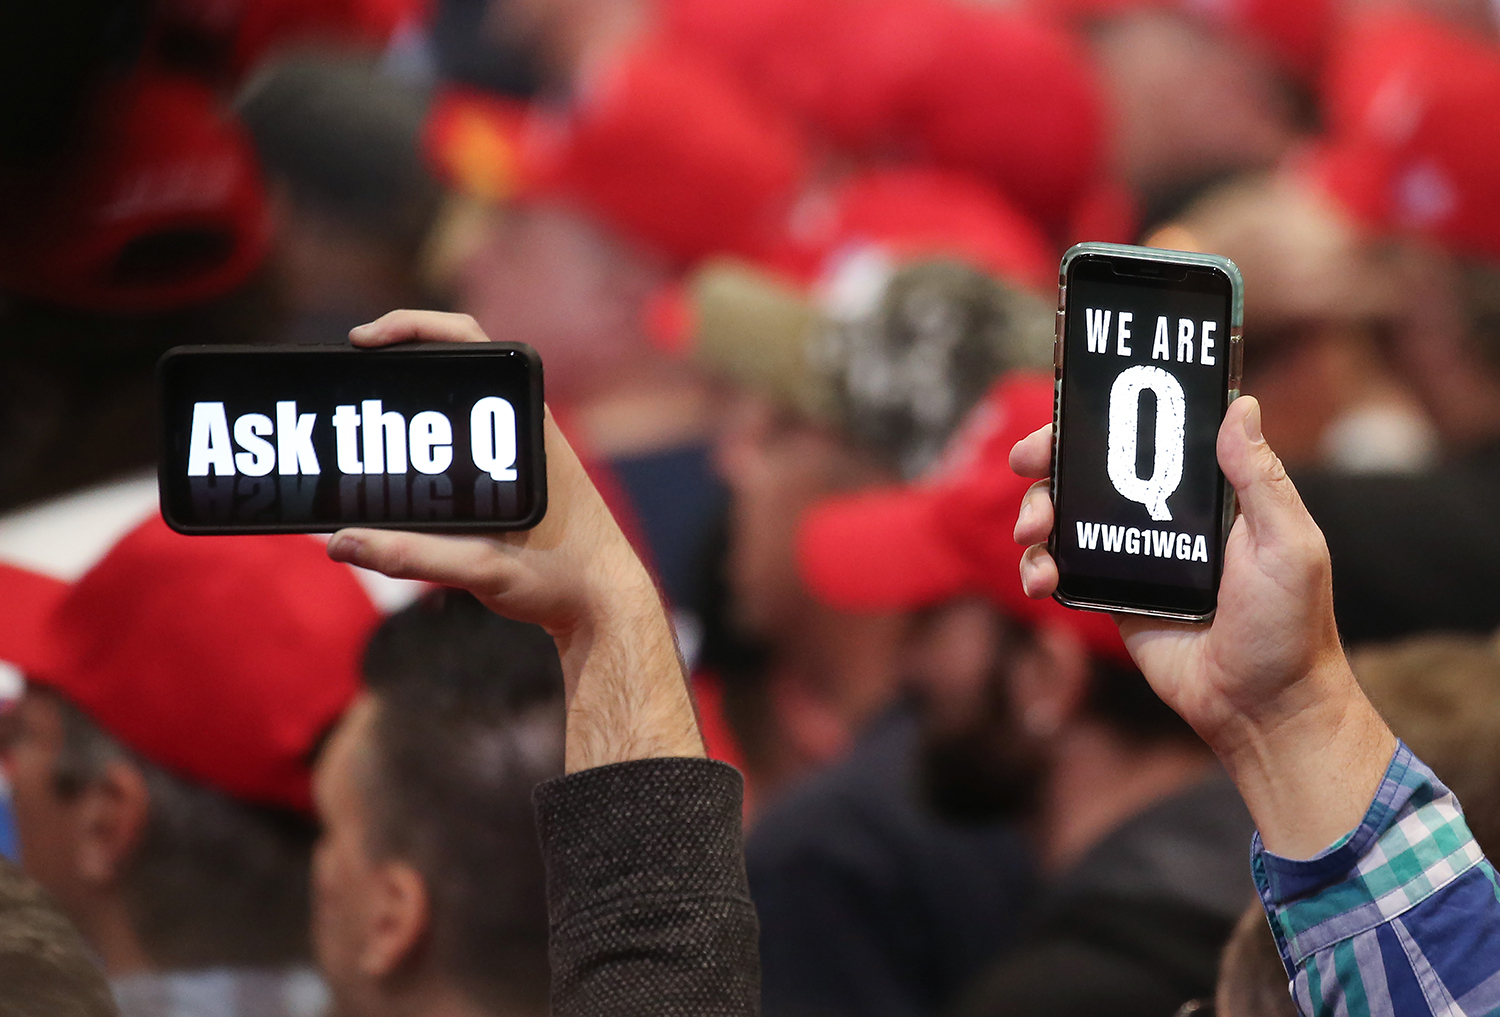 Supporters of President Donald Trump hold up their phones with messages referring to QAnon at a campaign rally at Las Vegas Convention Center in Nevada on Feb. 21.